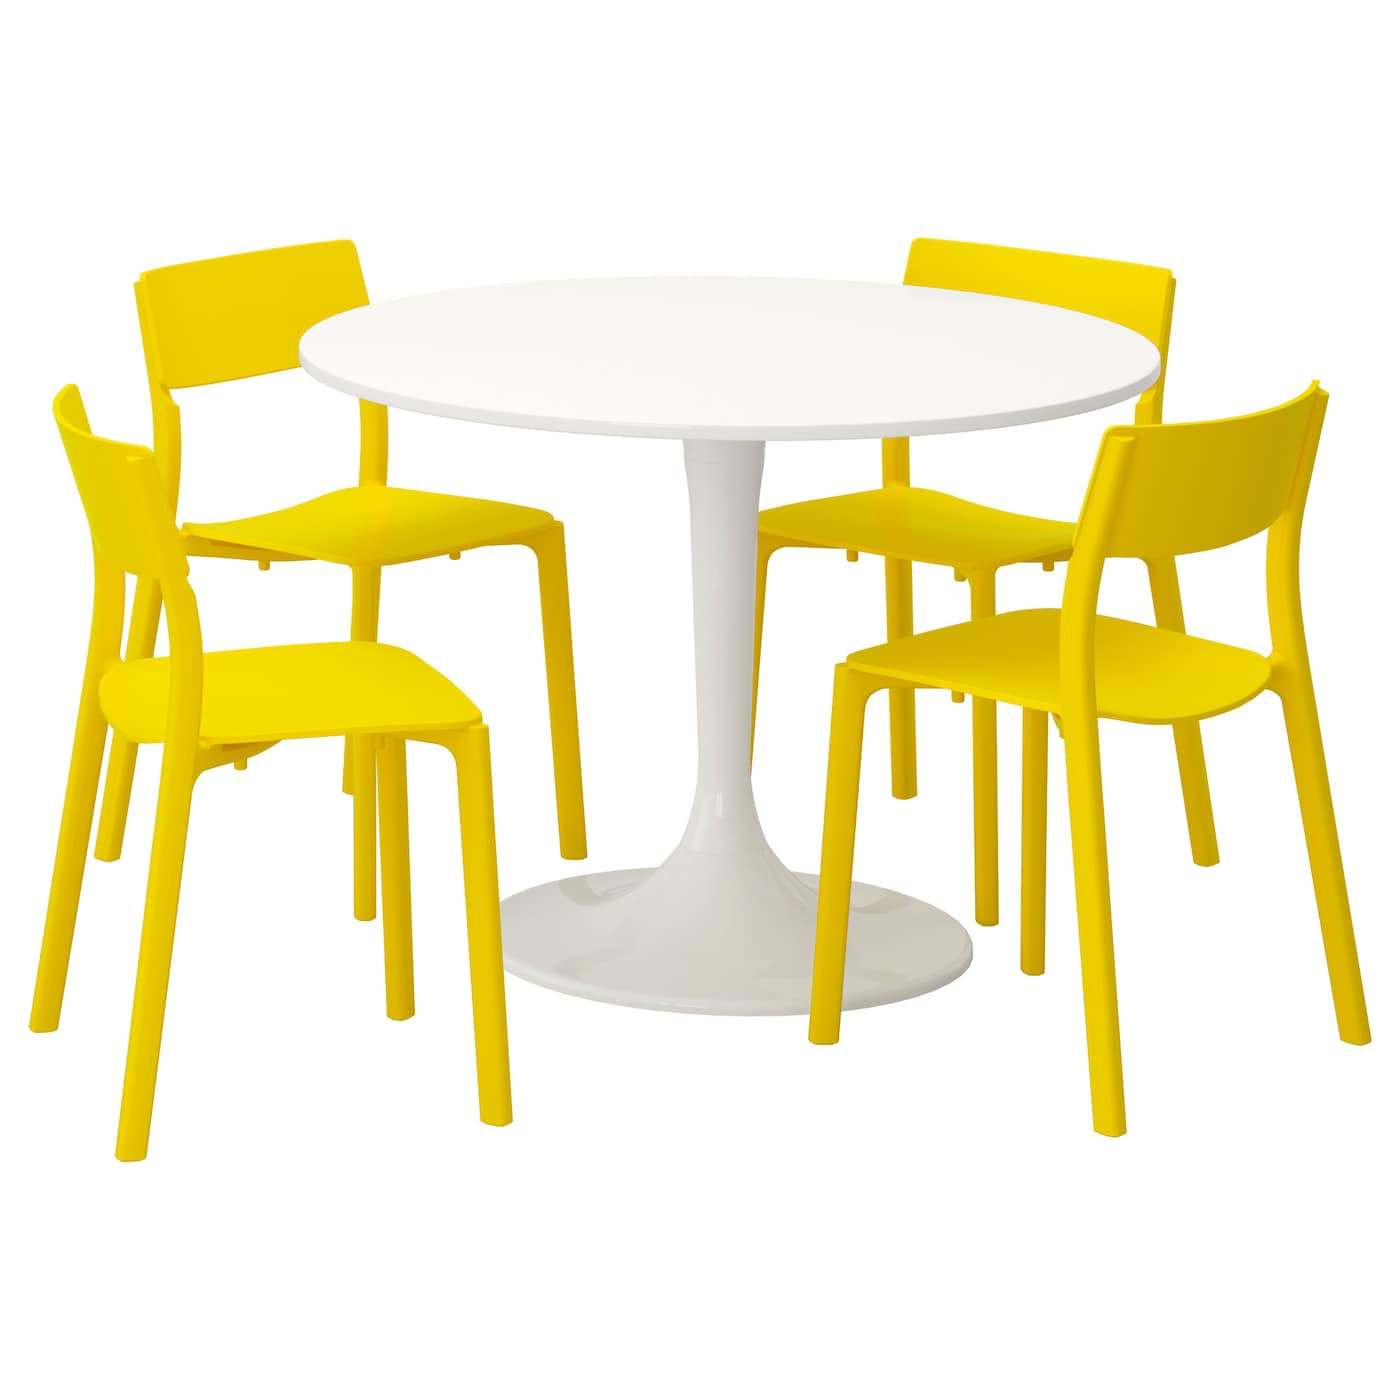 4 seater dining table chairs ikea for Docksta dining table